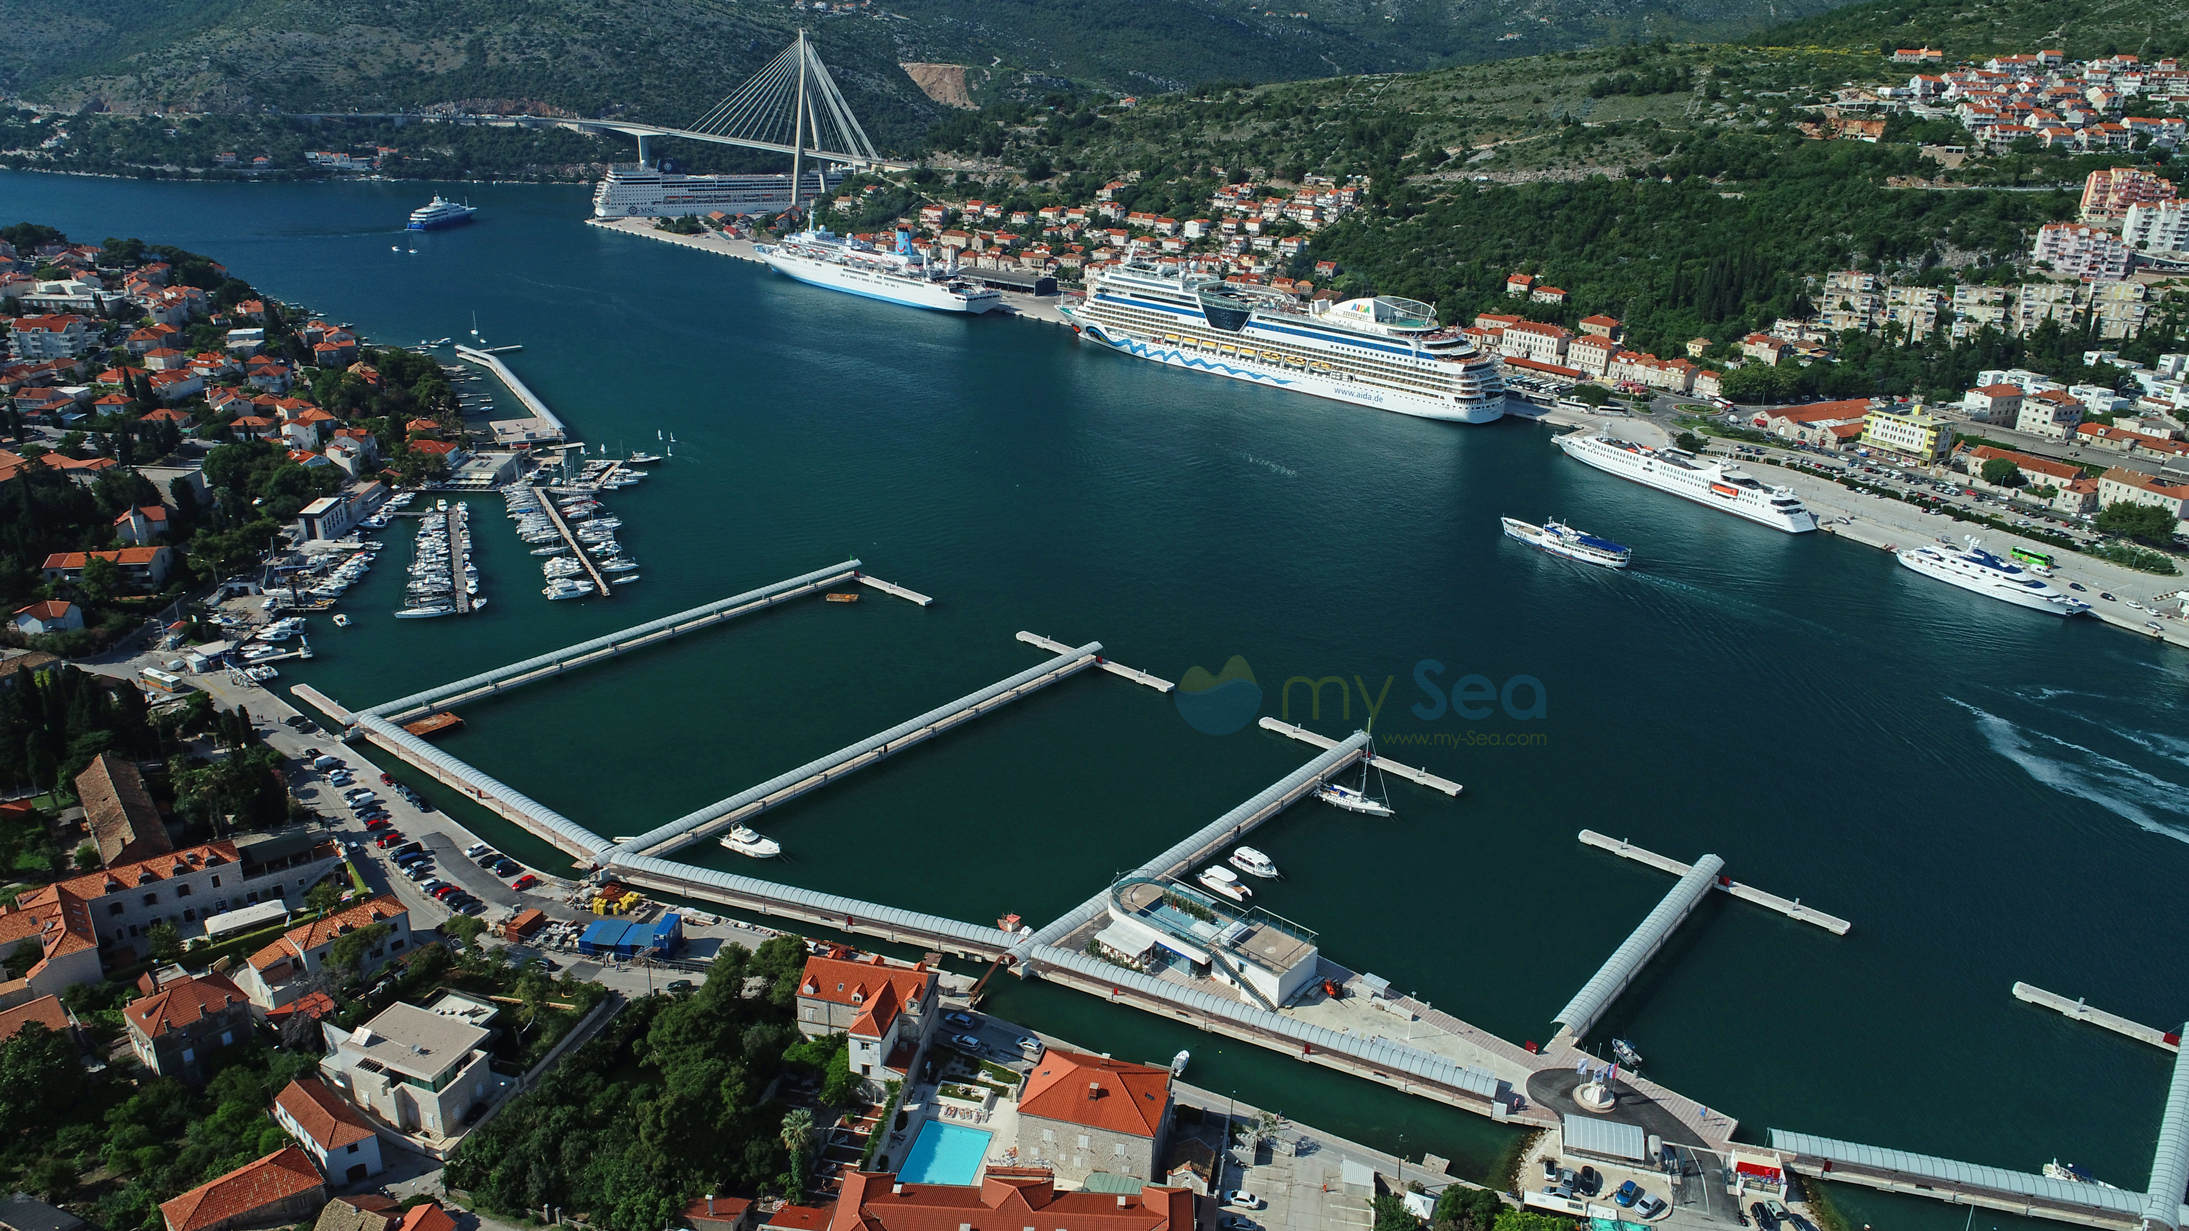 This is the new marina Frapa in Dubrovnik